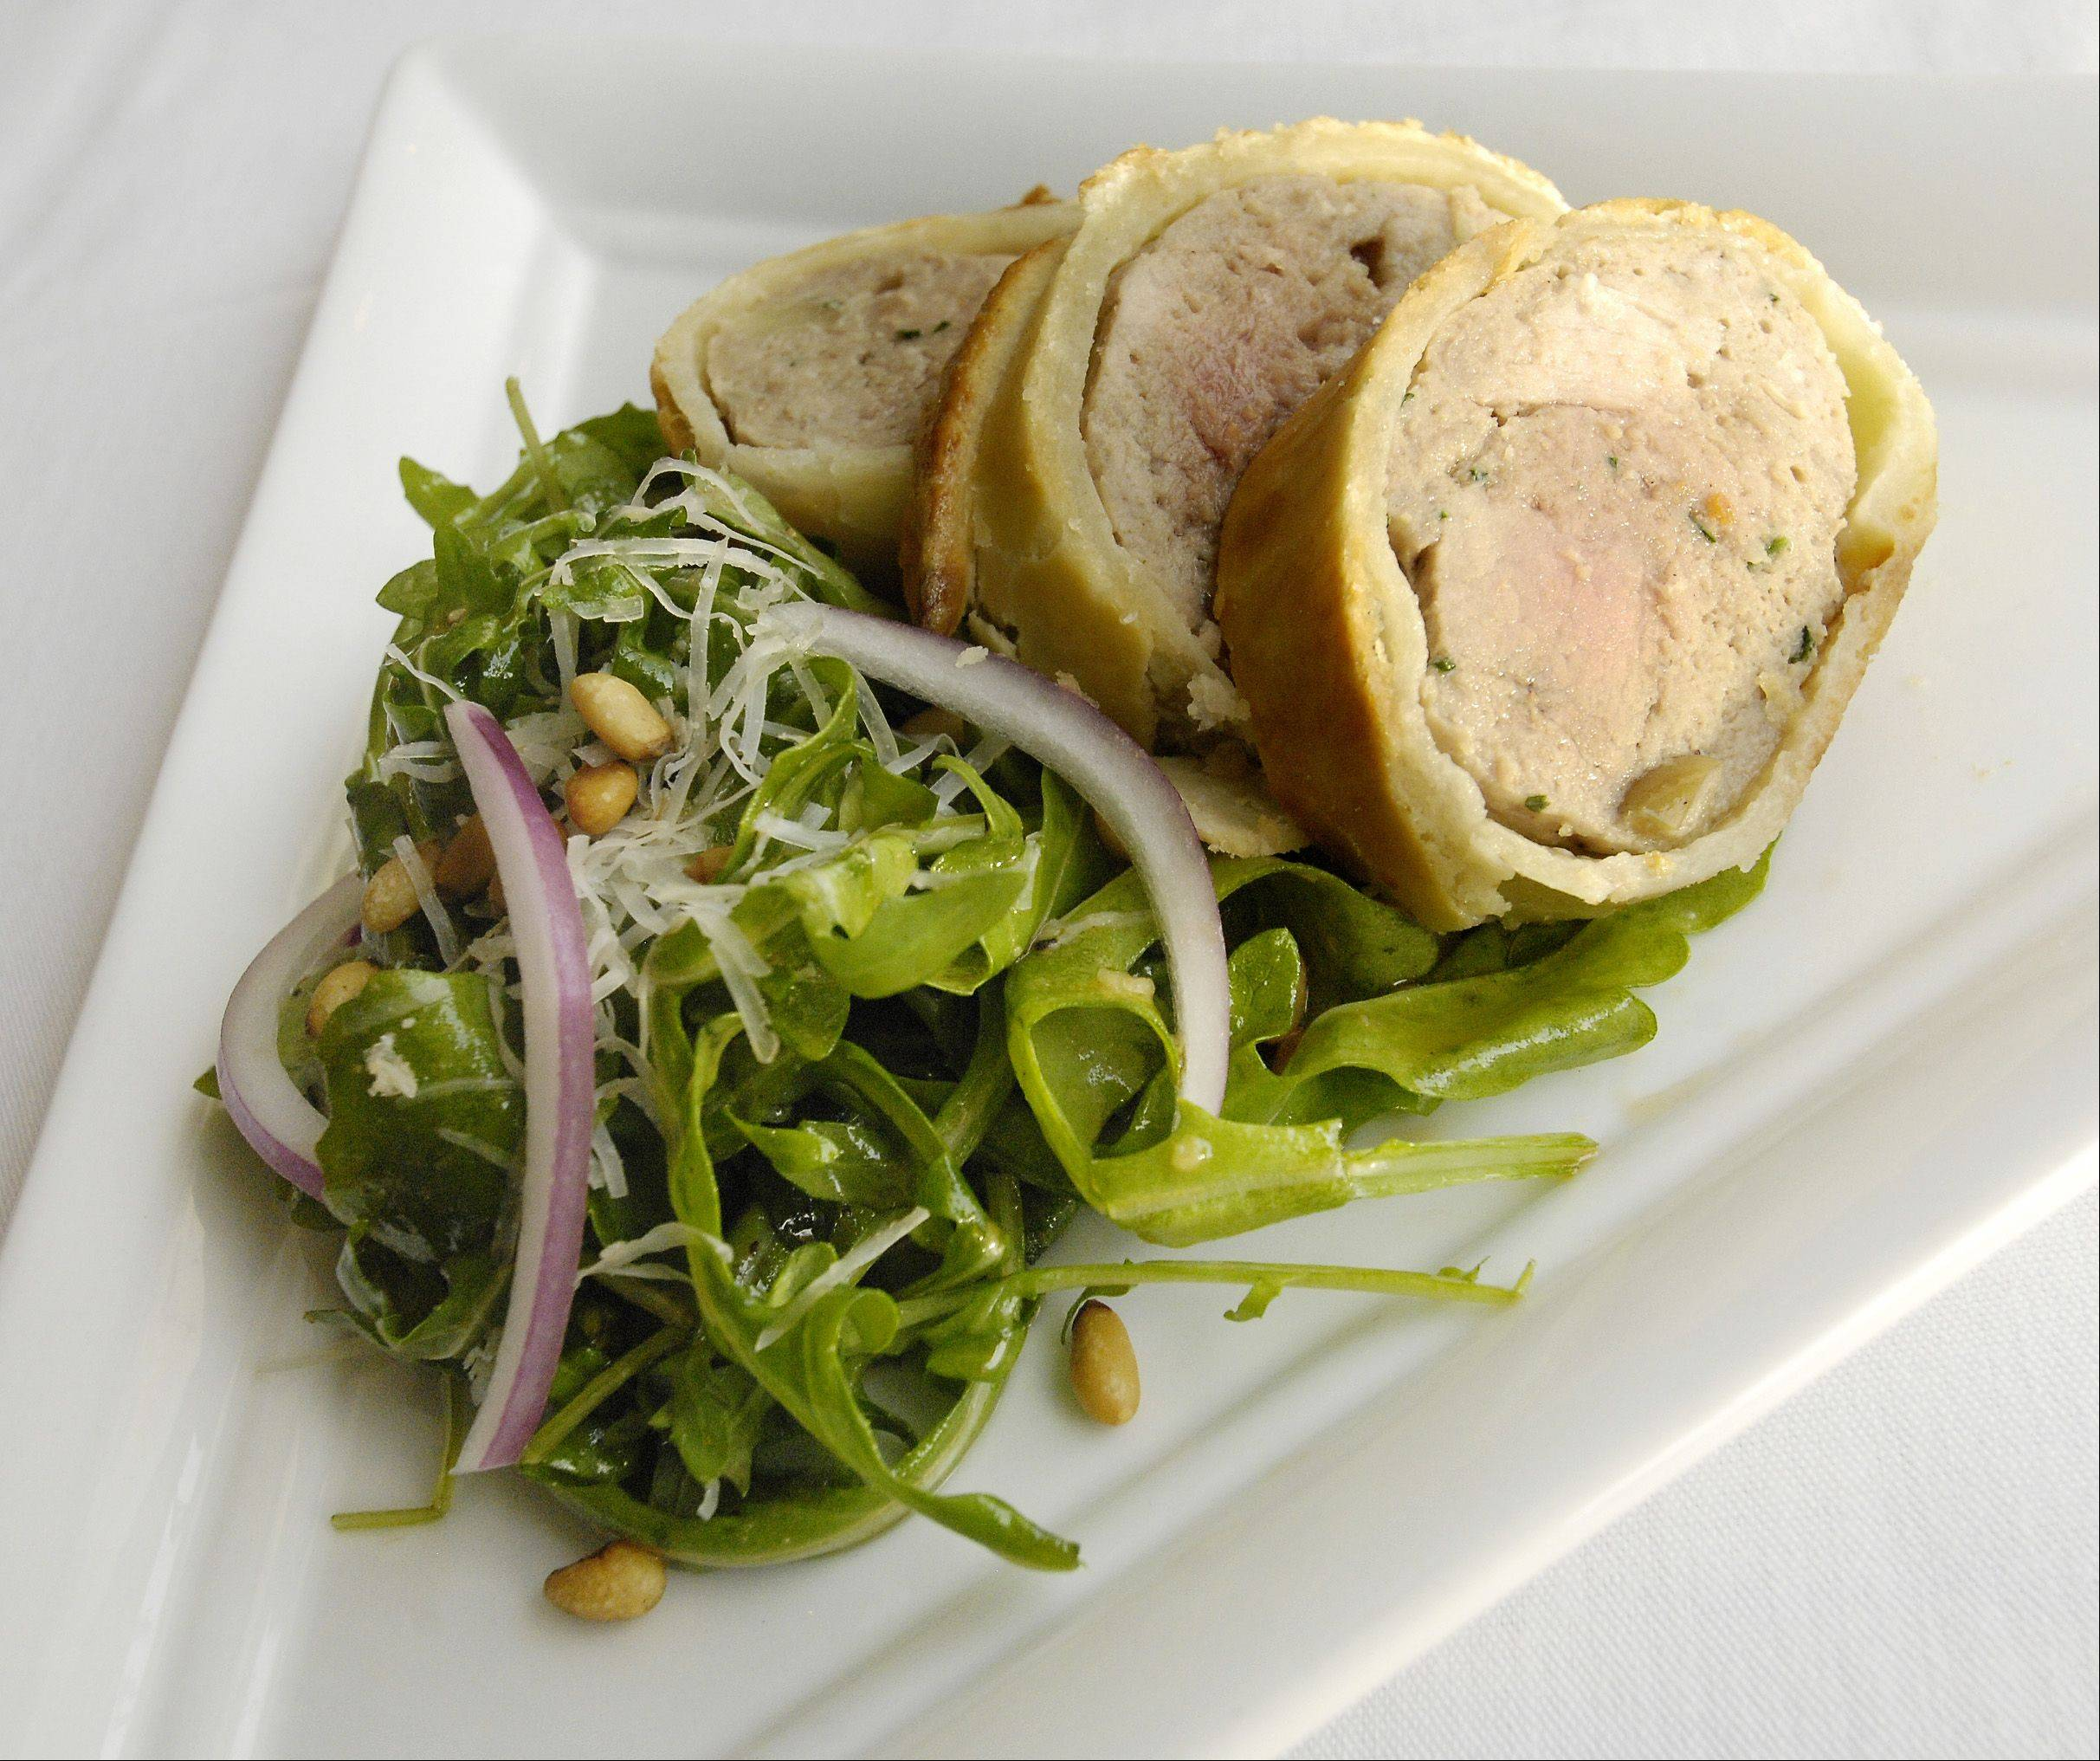 The European Ryder Cup team will be dining on Pork and Apple Sausage en Croute and Rocket Salad that Medinah Country Club Executive Chef Bryan Panico created for the tournament.